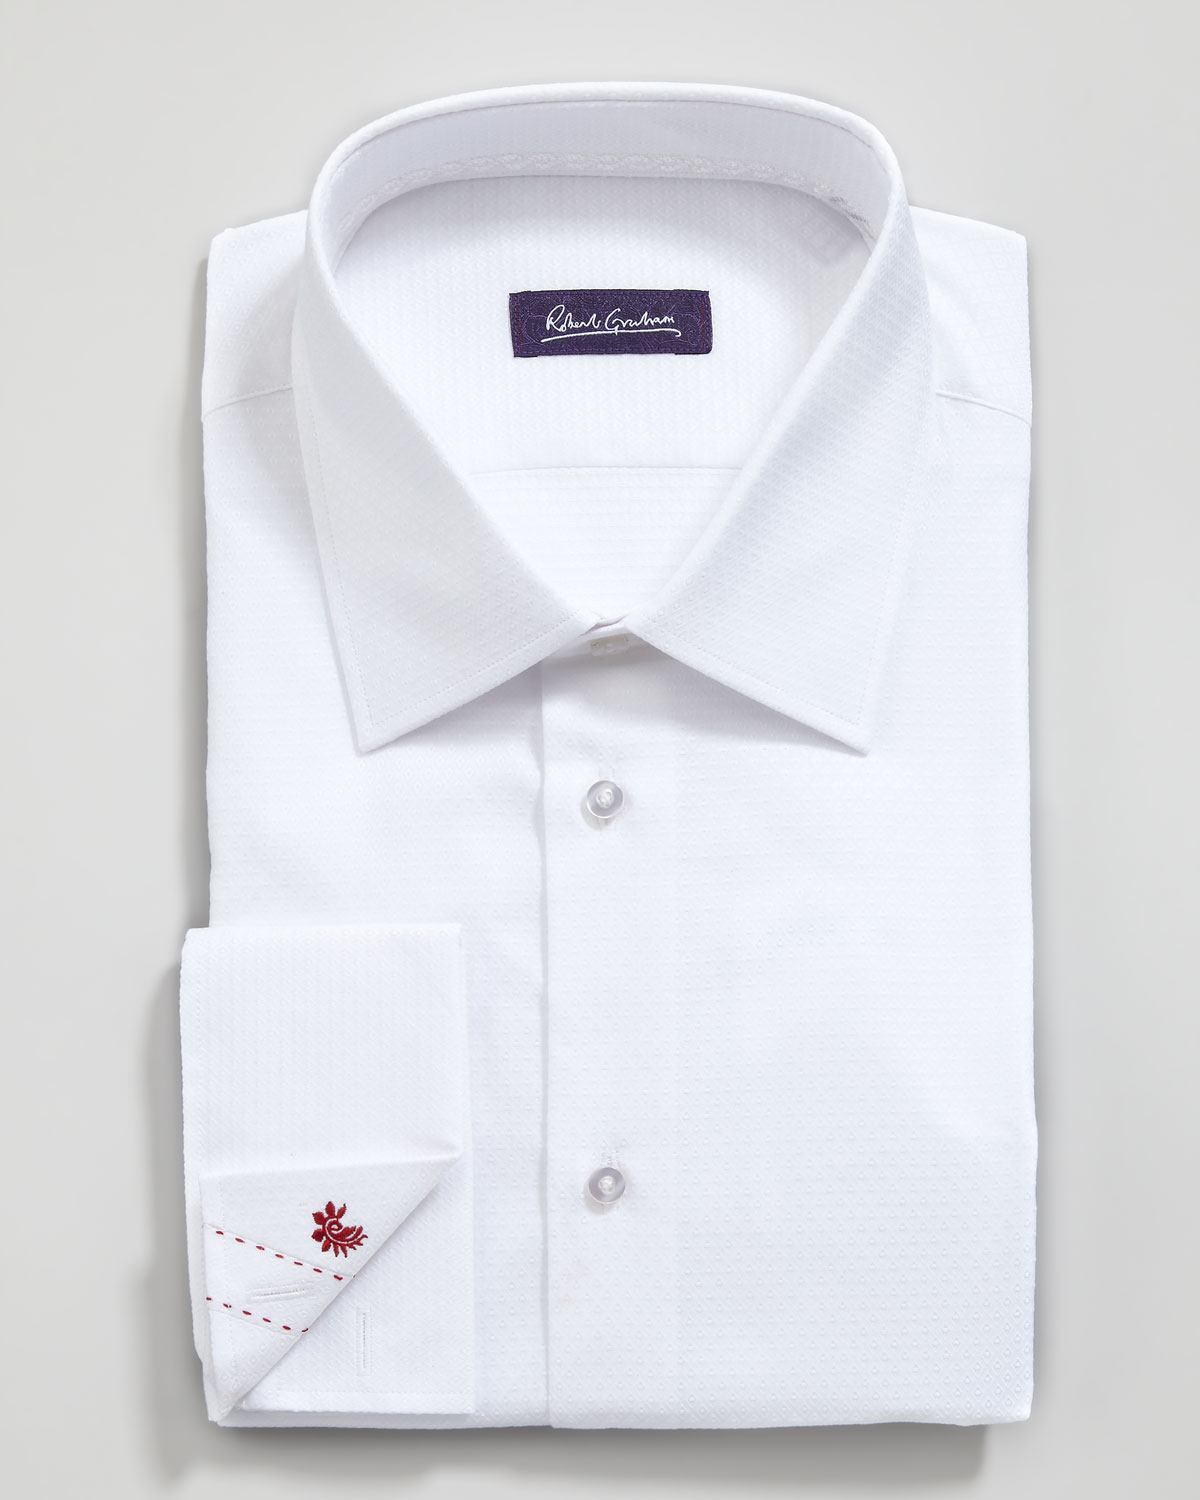 Robert graham simon textured french cuff dress shirt in for What is a french cuff shirt